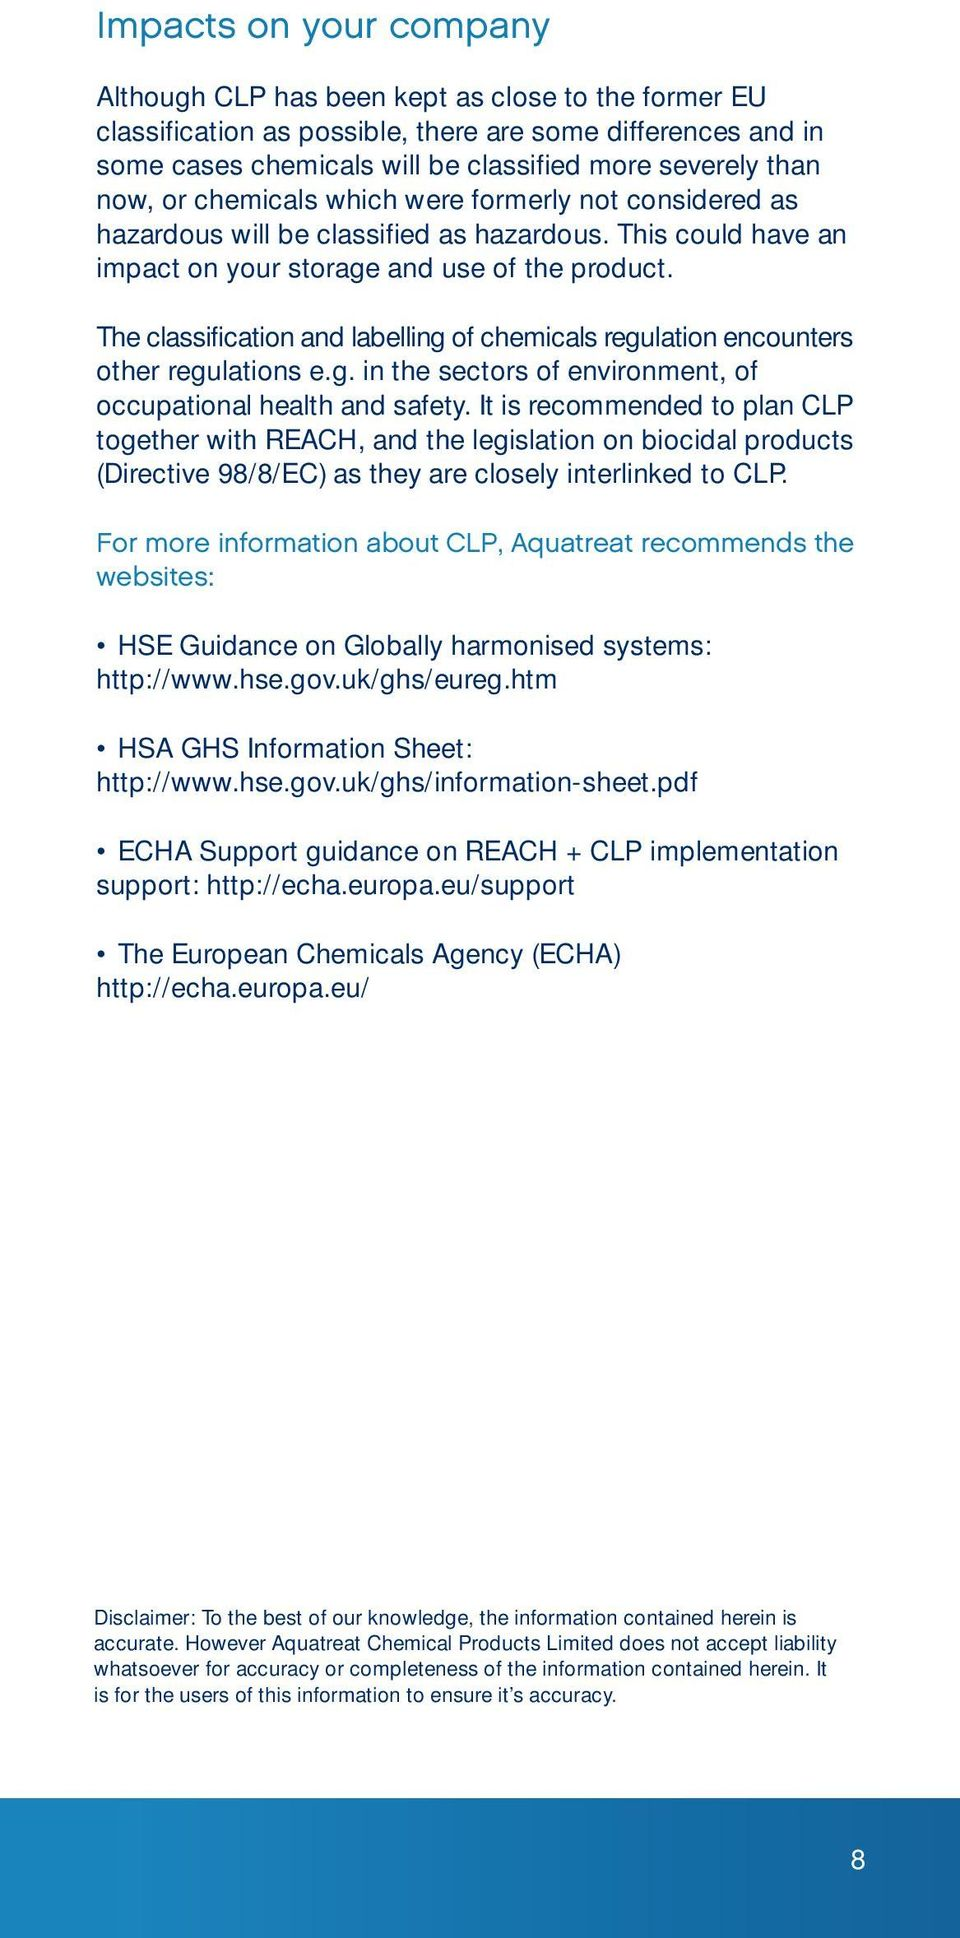 The classification and labelling of chemicals regulation encounters other regulations e.g. in the sectors of environment, of occupational health and safety.